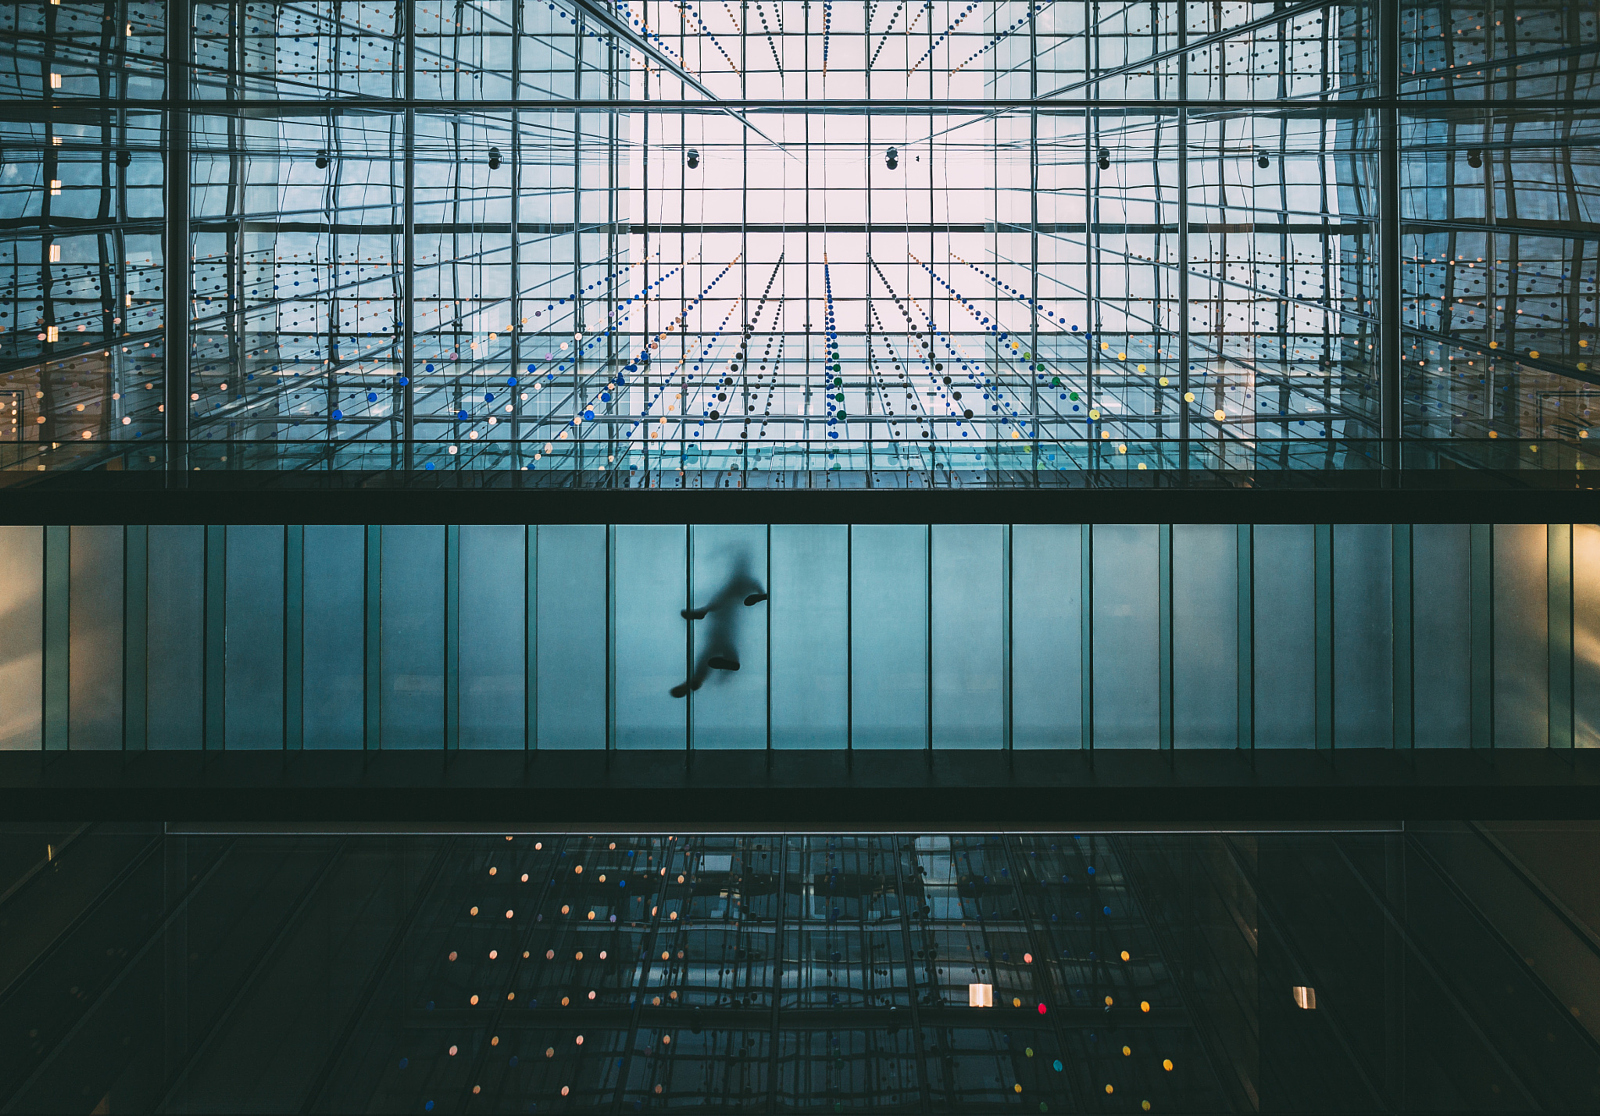 15 Beautiful Photos Captured by Simply... Looking Up